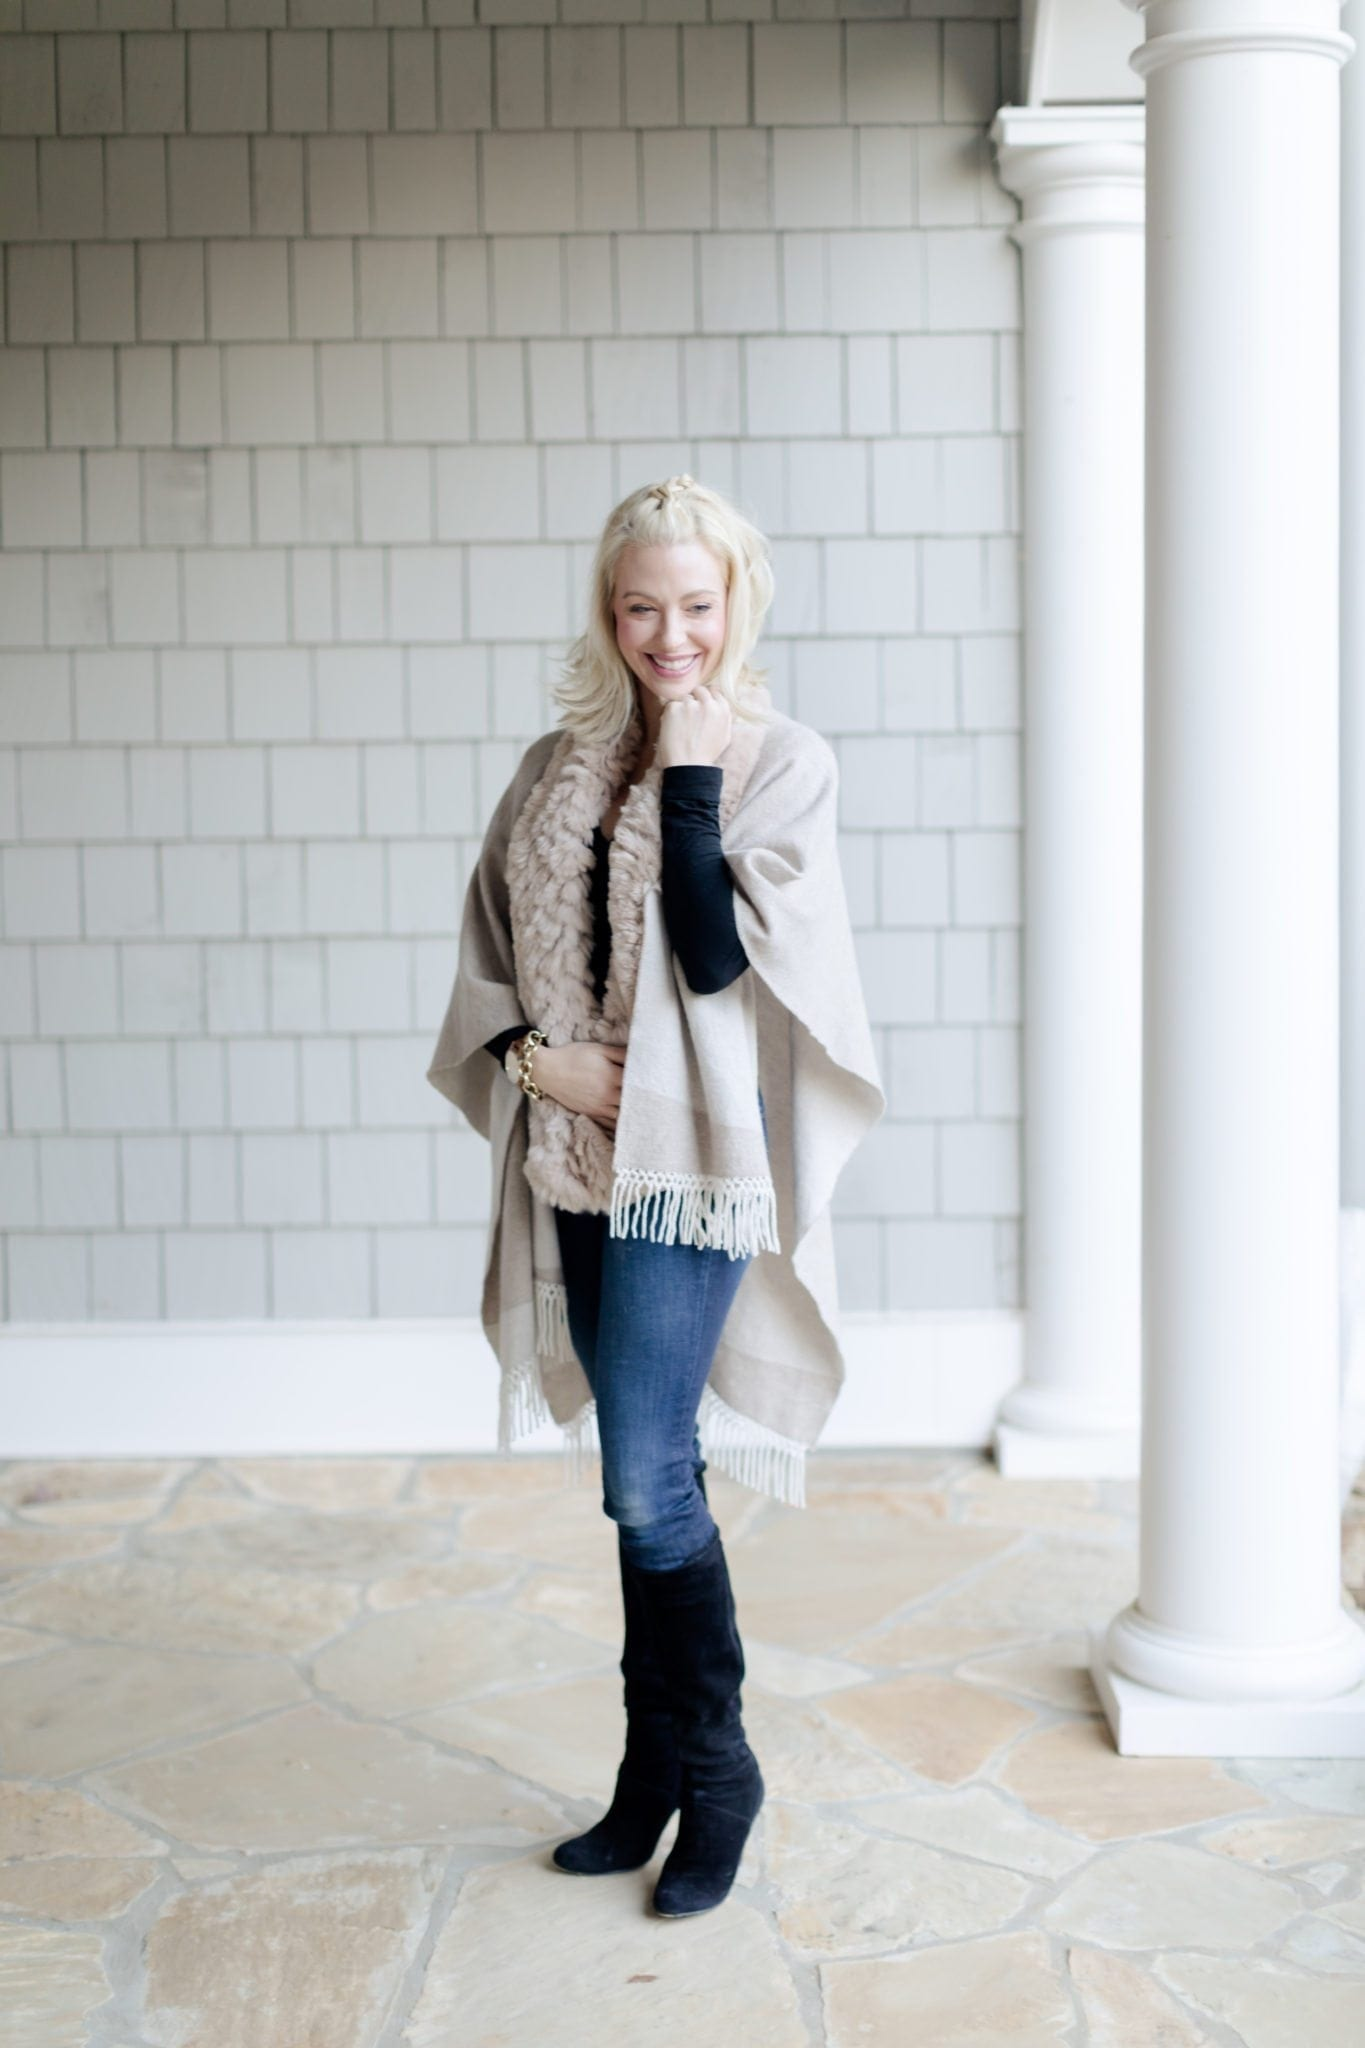 Knee High suede black boots with heel and tan cape and scarf. Short blonde hairstyle.